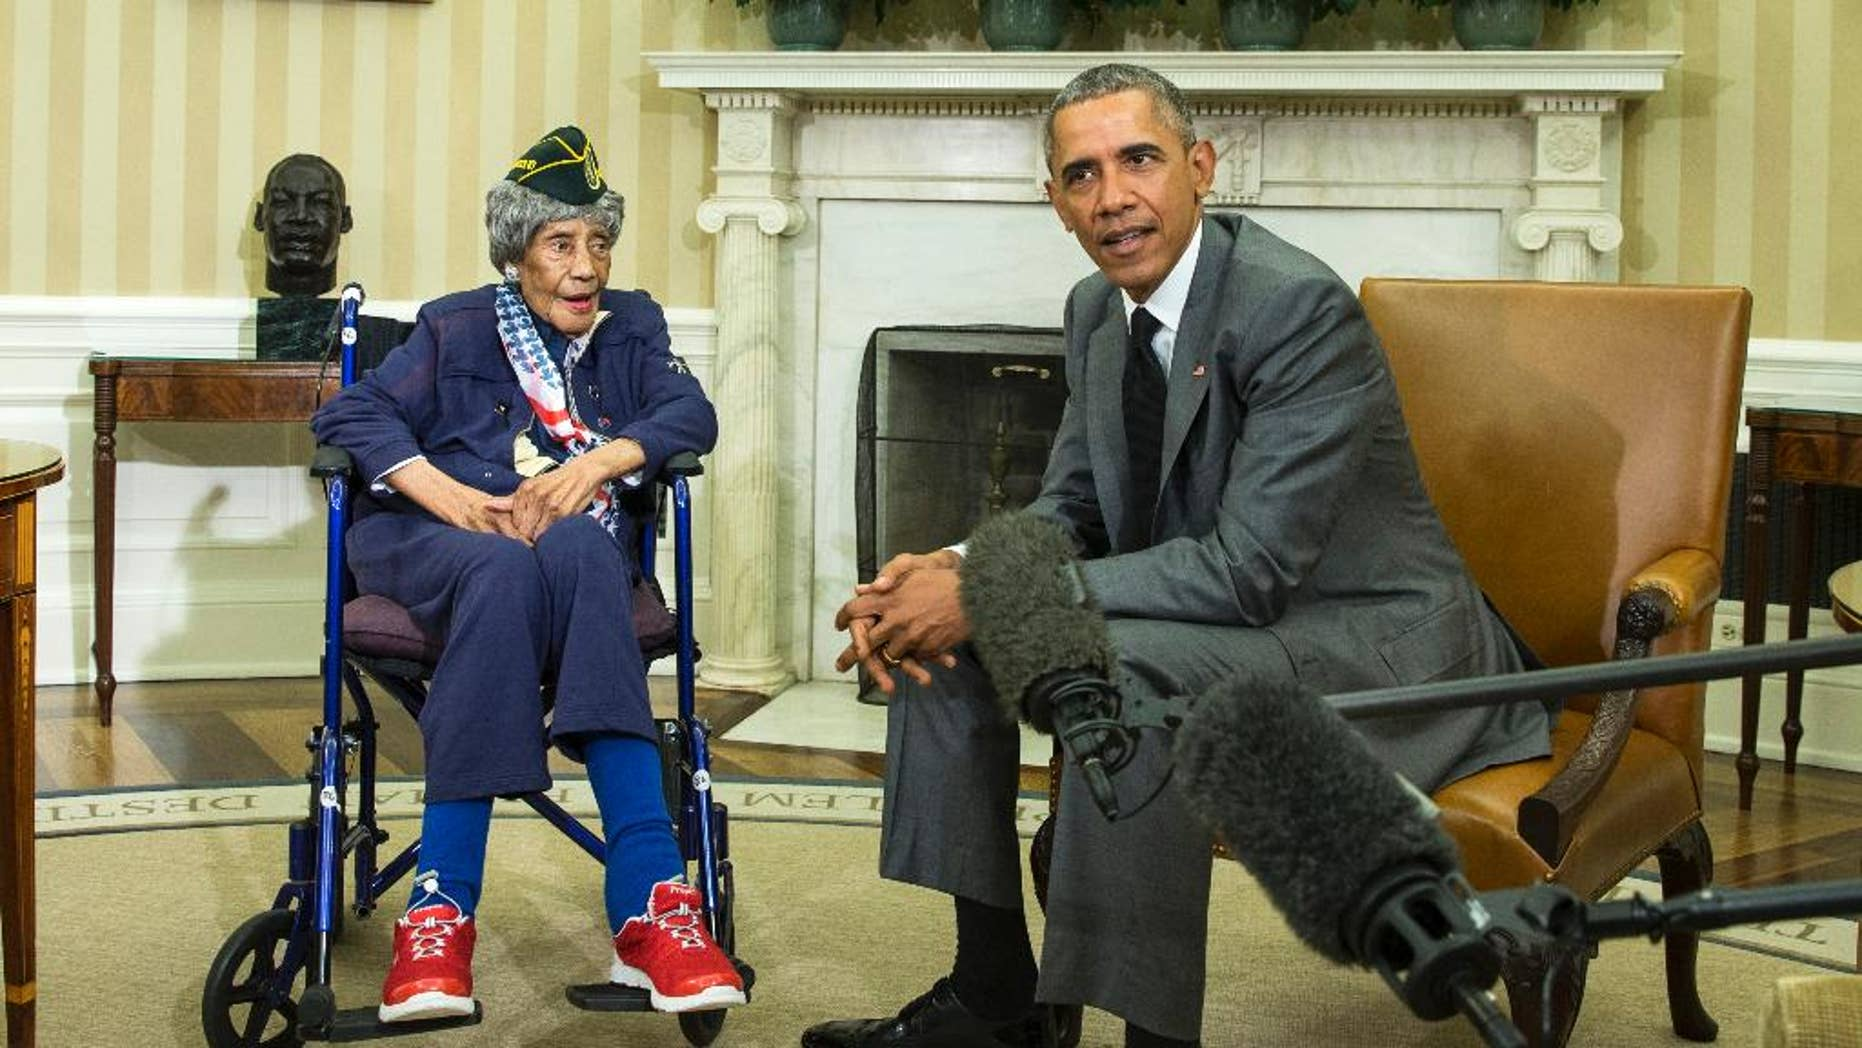 FILE - In this July 17, 2015, file photo, President Barack Obama meets with Emma Didlake, 110, of Detroit, the oldest known World War II veteran, in the Oval Office of the White House in Washington. The Michigan woman who was believed to be the nation's oldest veteran has died a month after meeting the president. The Oakland County medical examiner's office says Didlake died Sunday, Aug. 16 in West Bloomfield, northwest of Detroit. (AP Photo/Evan Vucci, File)